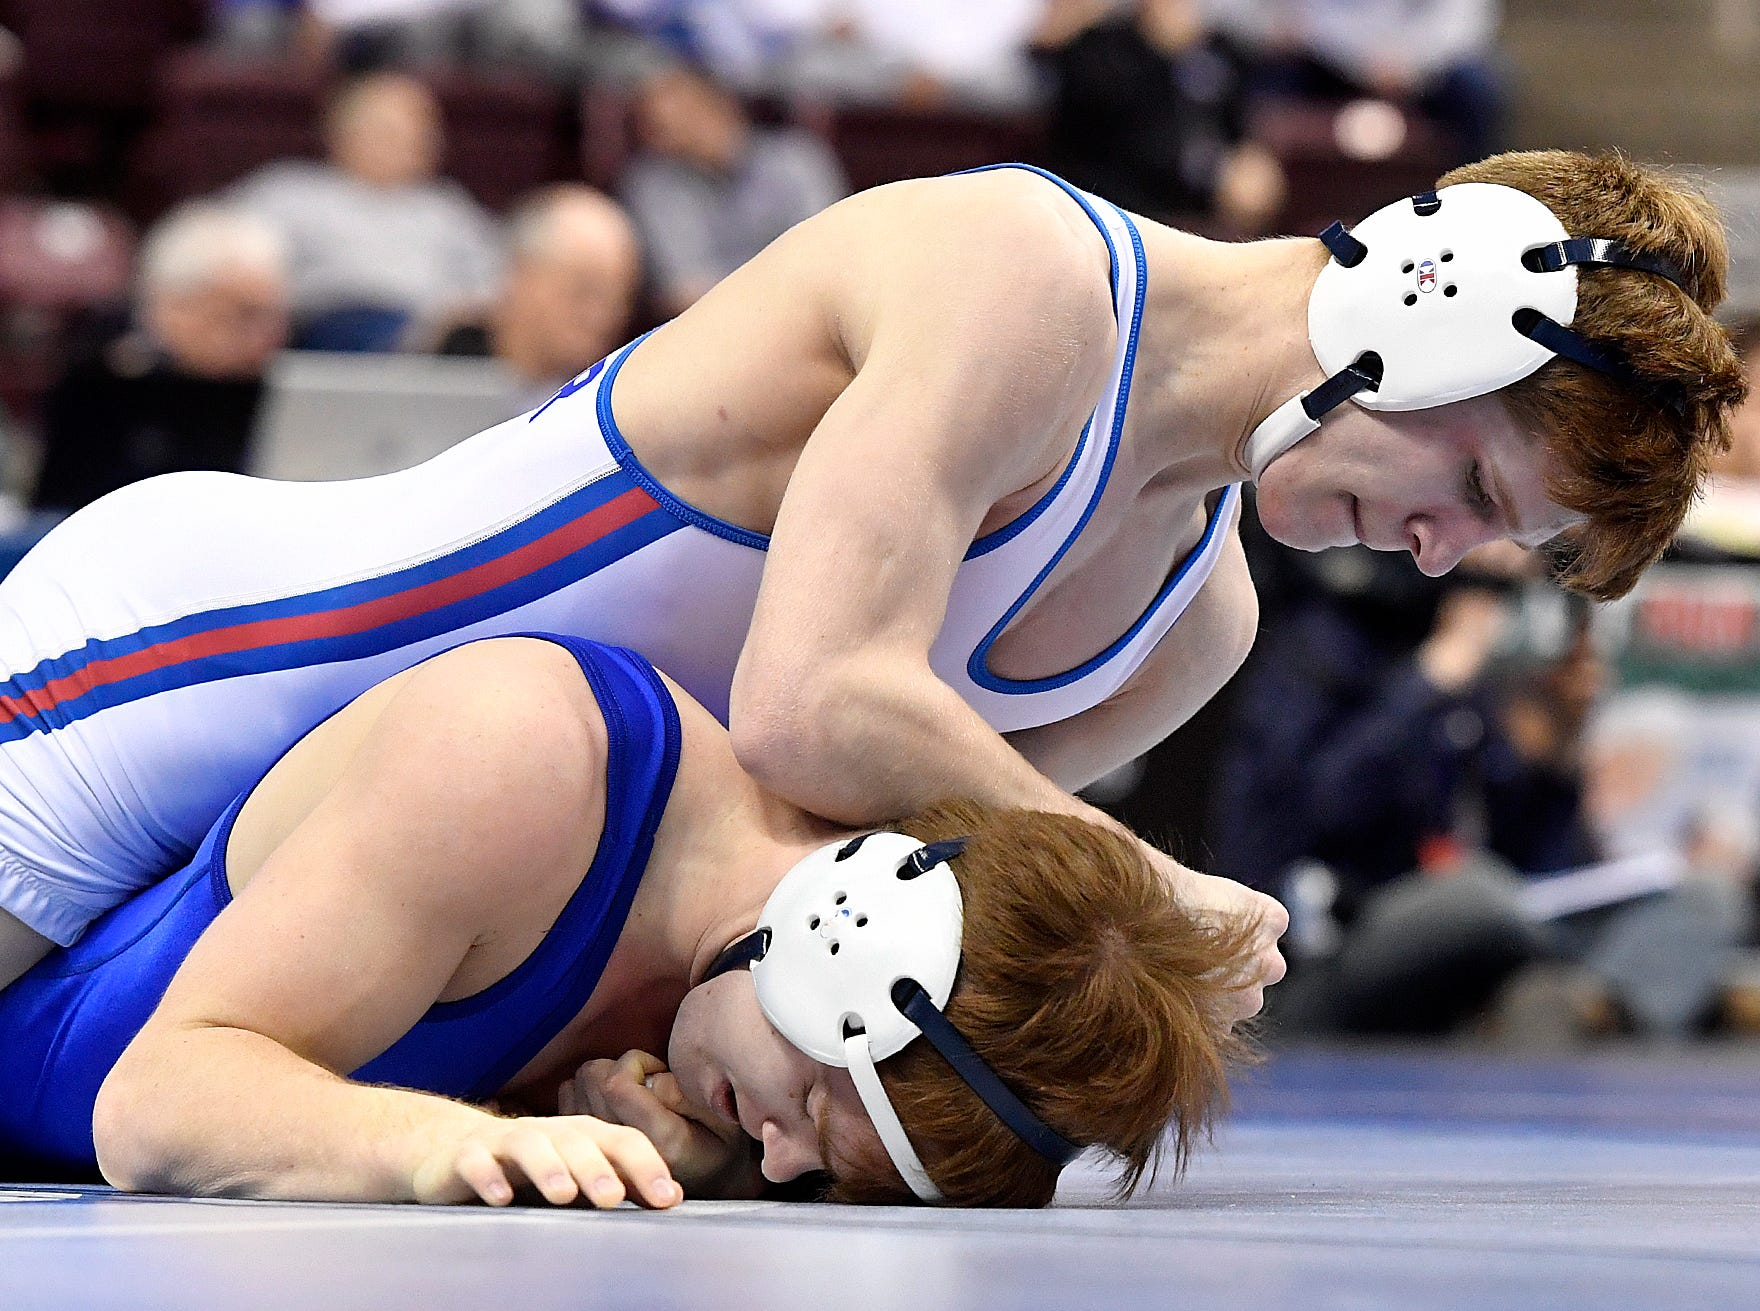 Thomas Dressler of Spring Grove wrestles Colin Franks of Connelsville in the 145 pound preliminary of the PIAA Class 3-A Wrestling Championships, Thursday, March 7, 2019.John A. Pavoncello photo